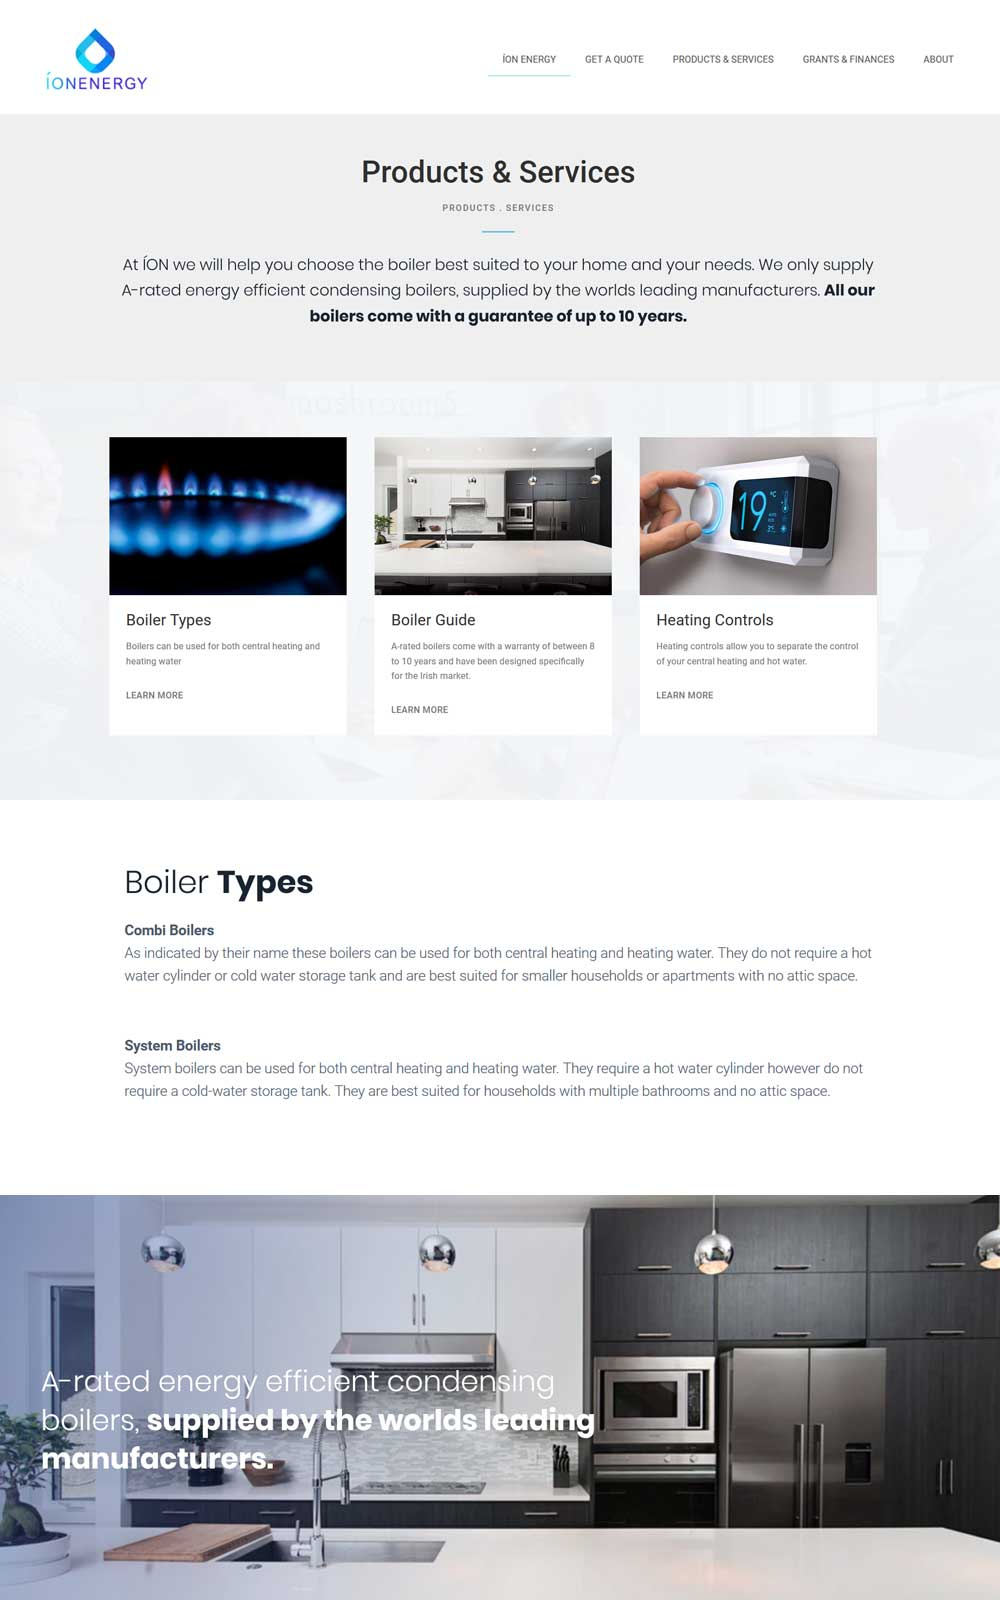 Layout design for the products page